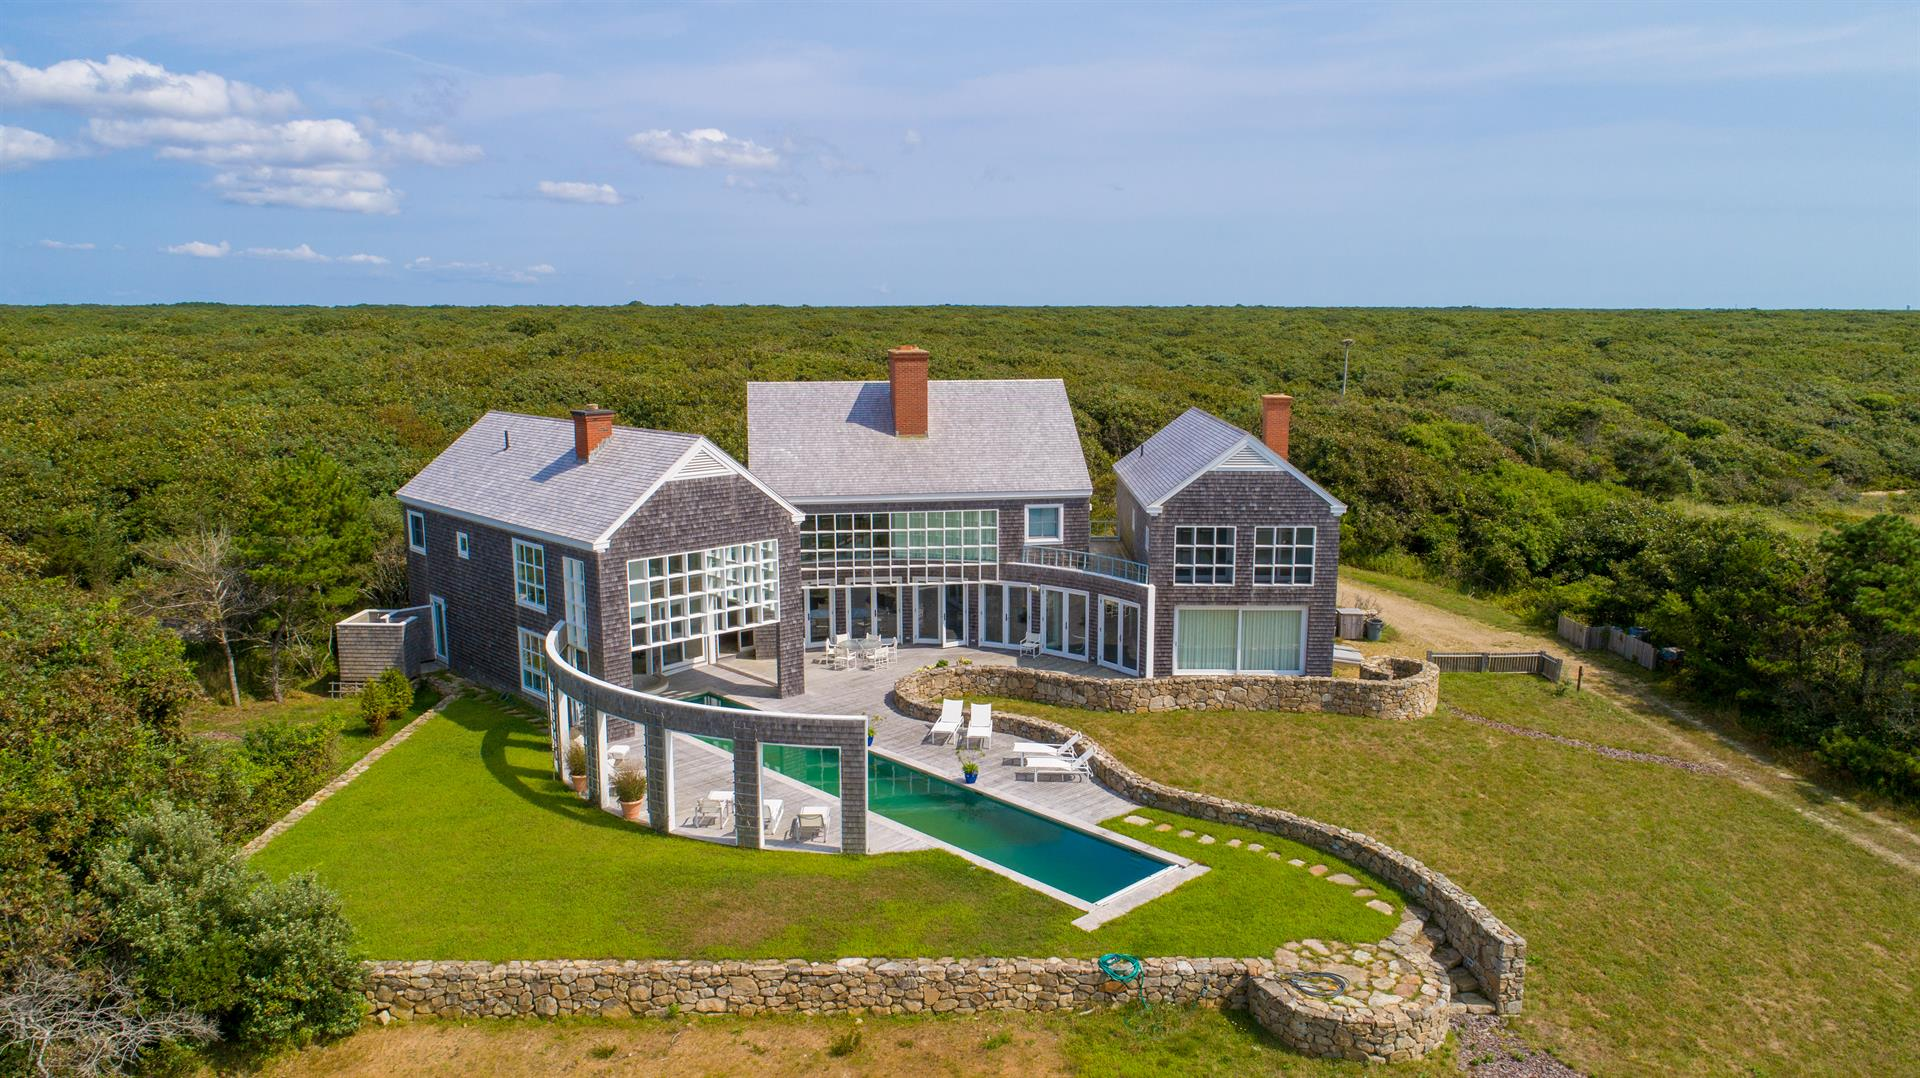 Miraculous Homers Pond Majestic Marthas Vineyard Oceanfront Paradise A Luxury Home For Sale In West Tisbury Marthas Vineyard Dukes County Massachusetts Interior Design Ideas Gentotryabchikinfo